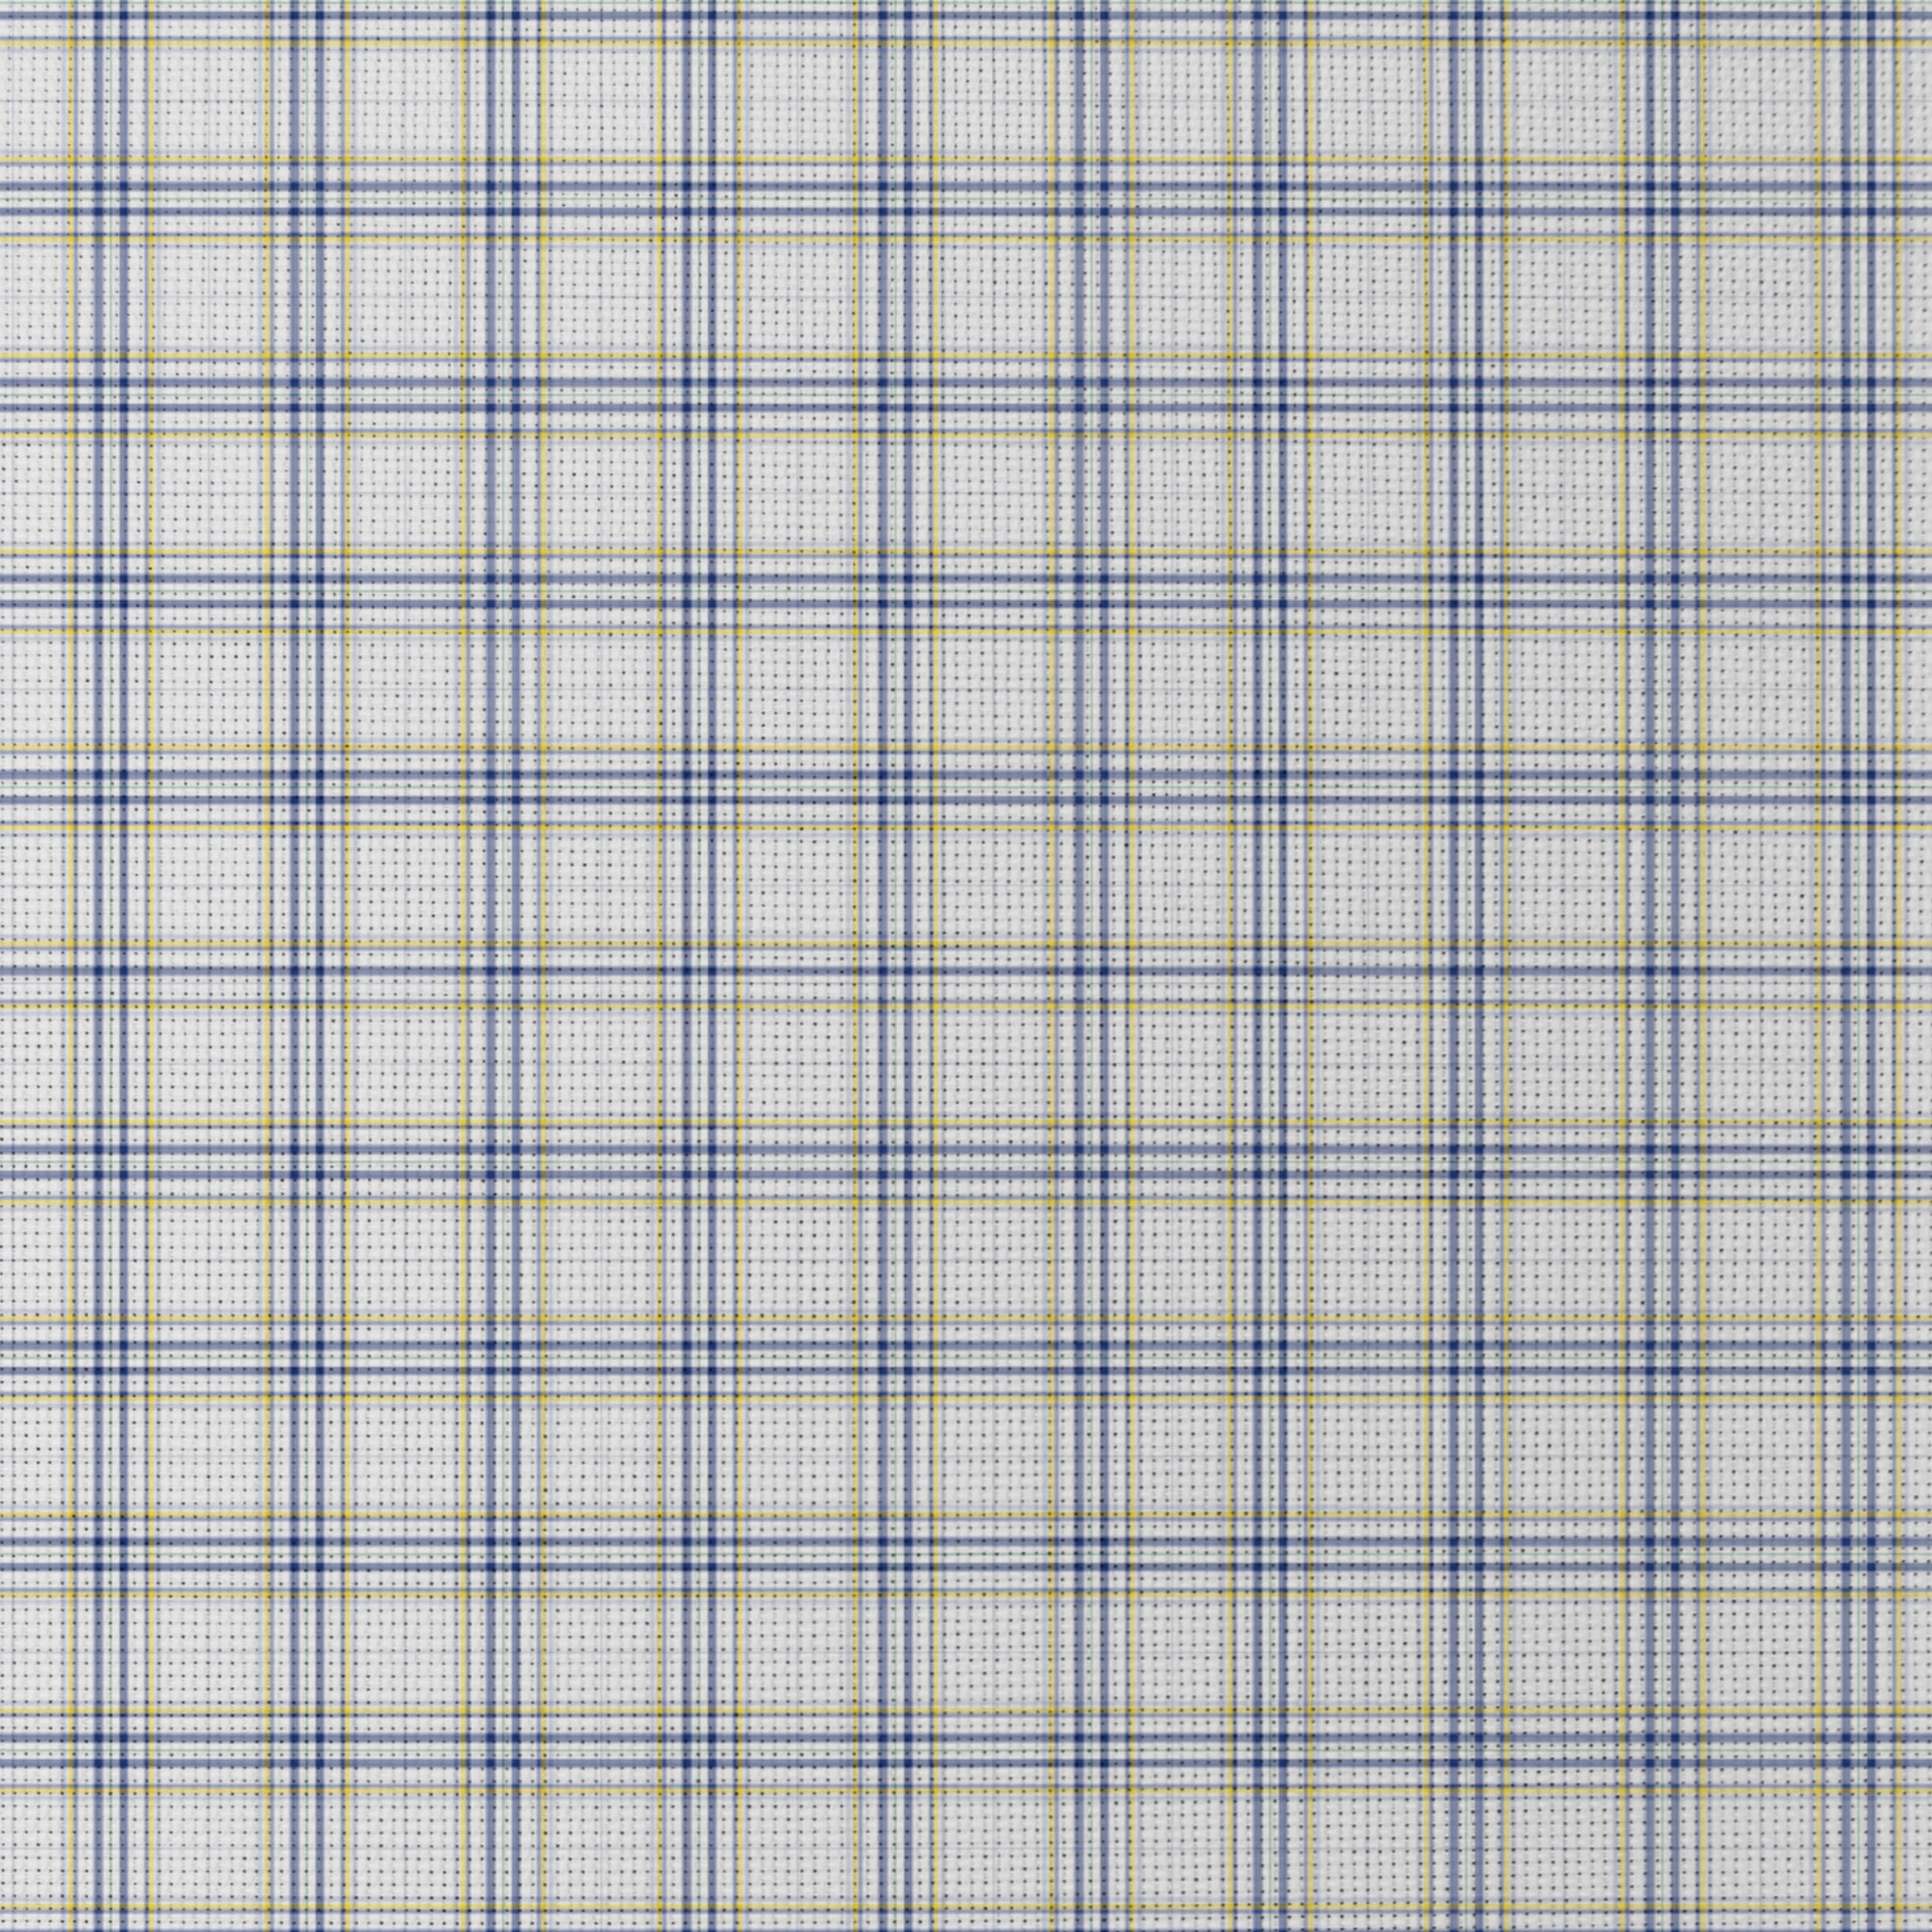 Blue And Yellow Check Patterned Cross Stitch Fabric